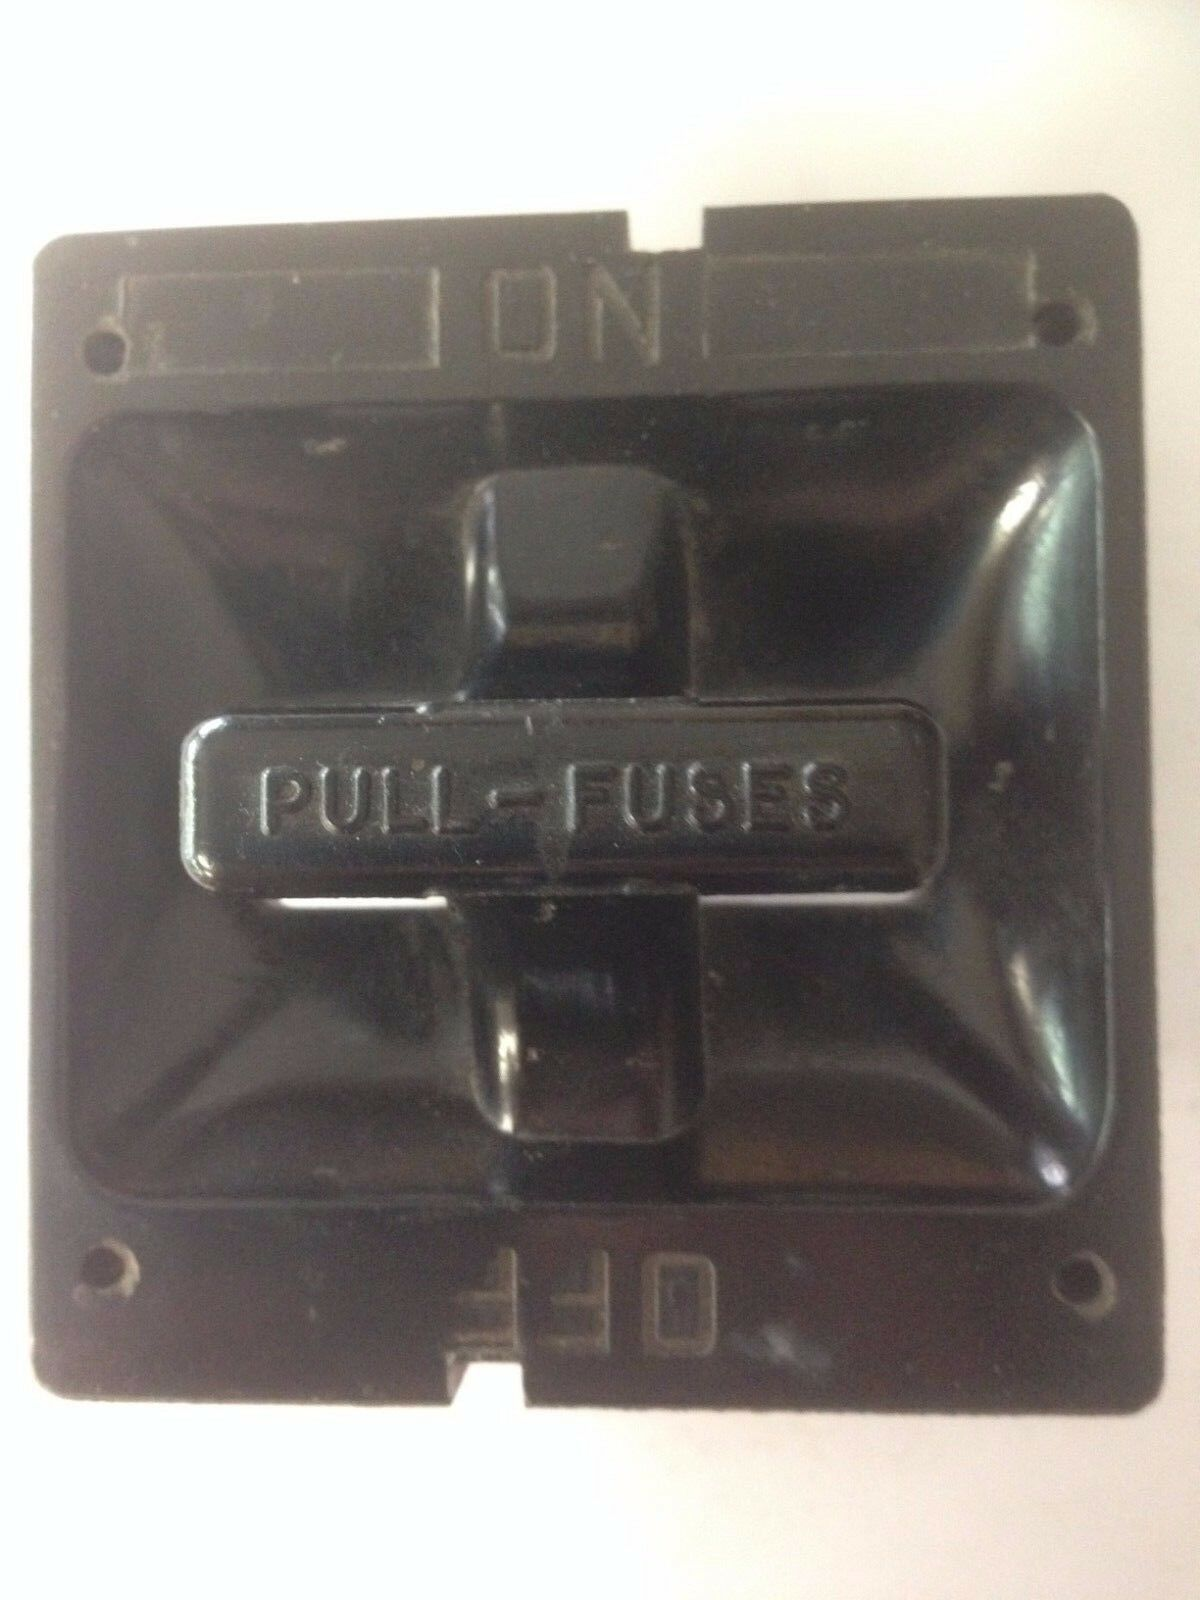 Square D 60 amp Fuse Holder Pull Out 1 of 2Only 1 available See More